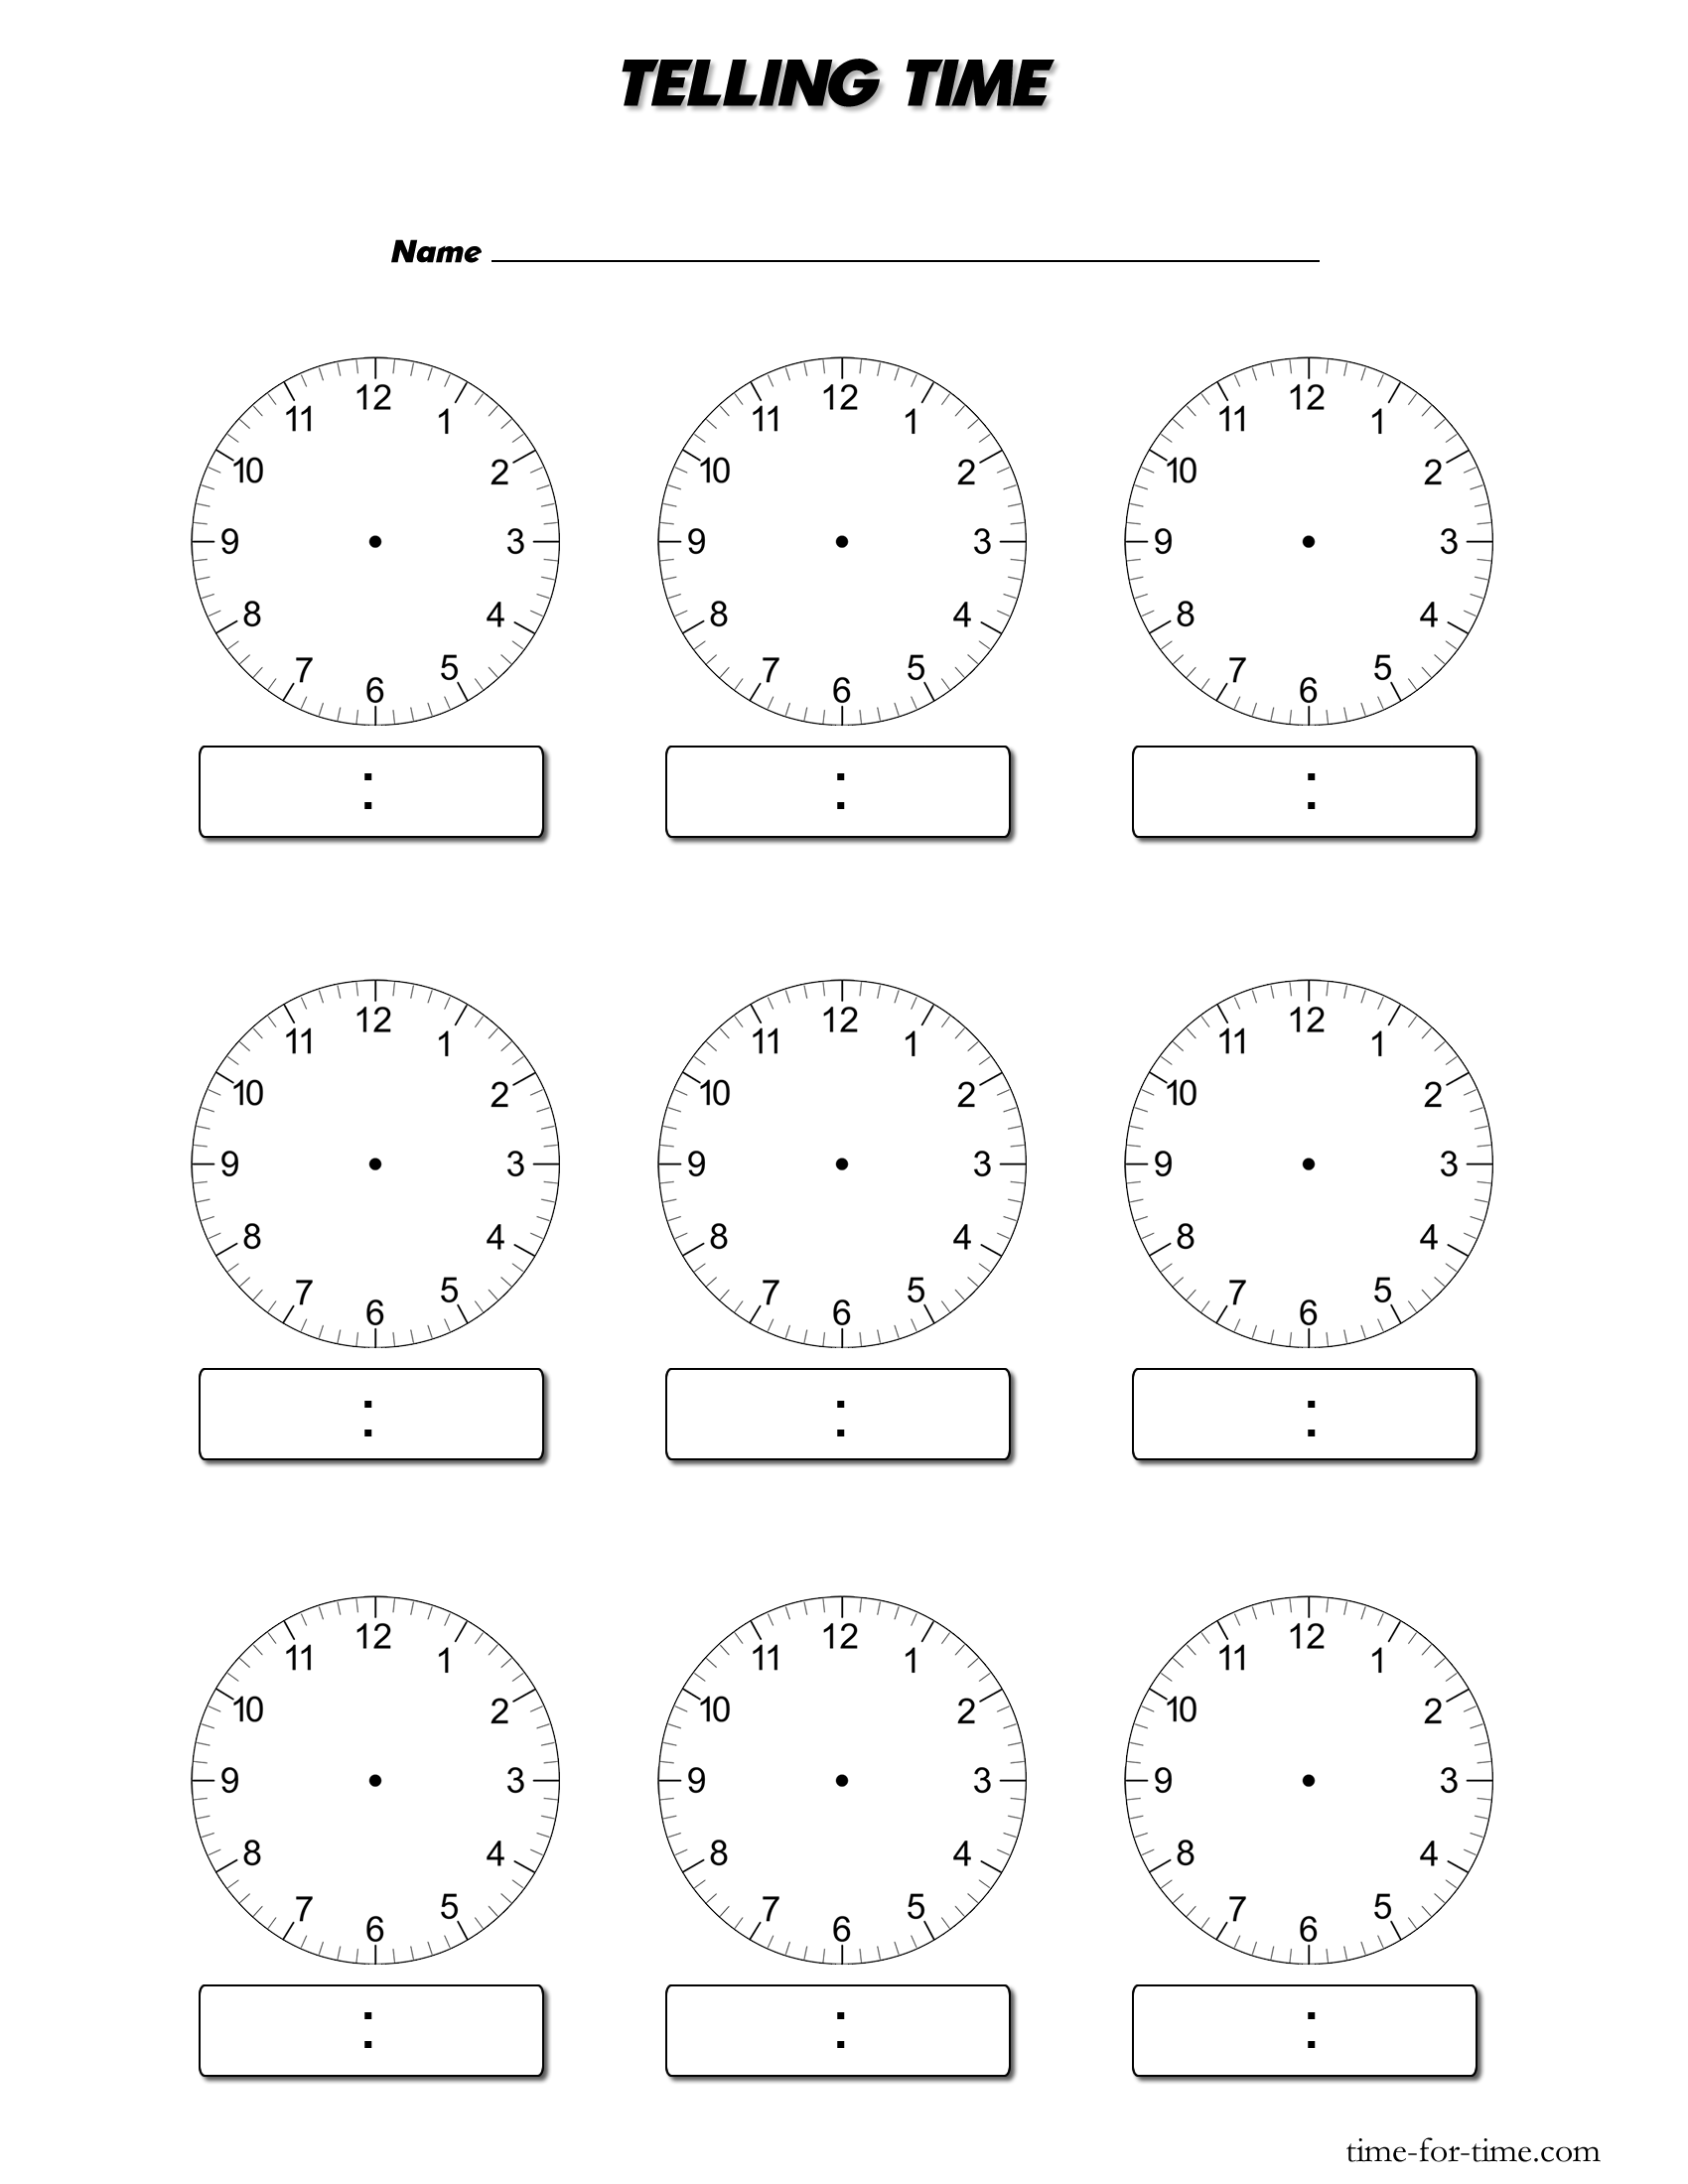 ... time blank clock worksheets 550 x 550 13 kb gif time blank clock